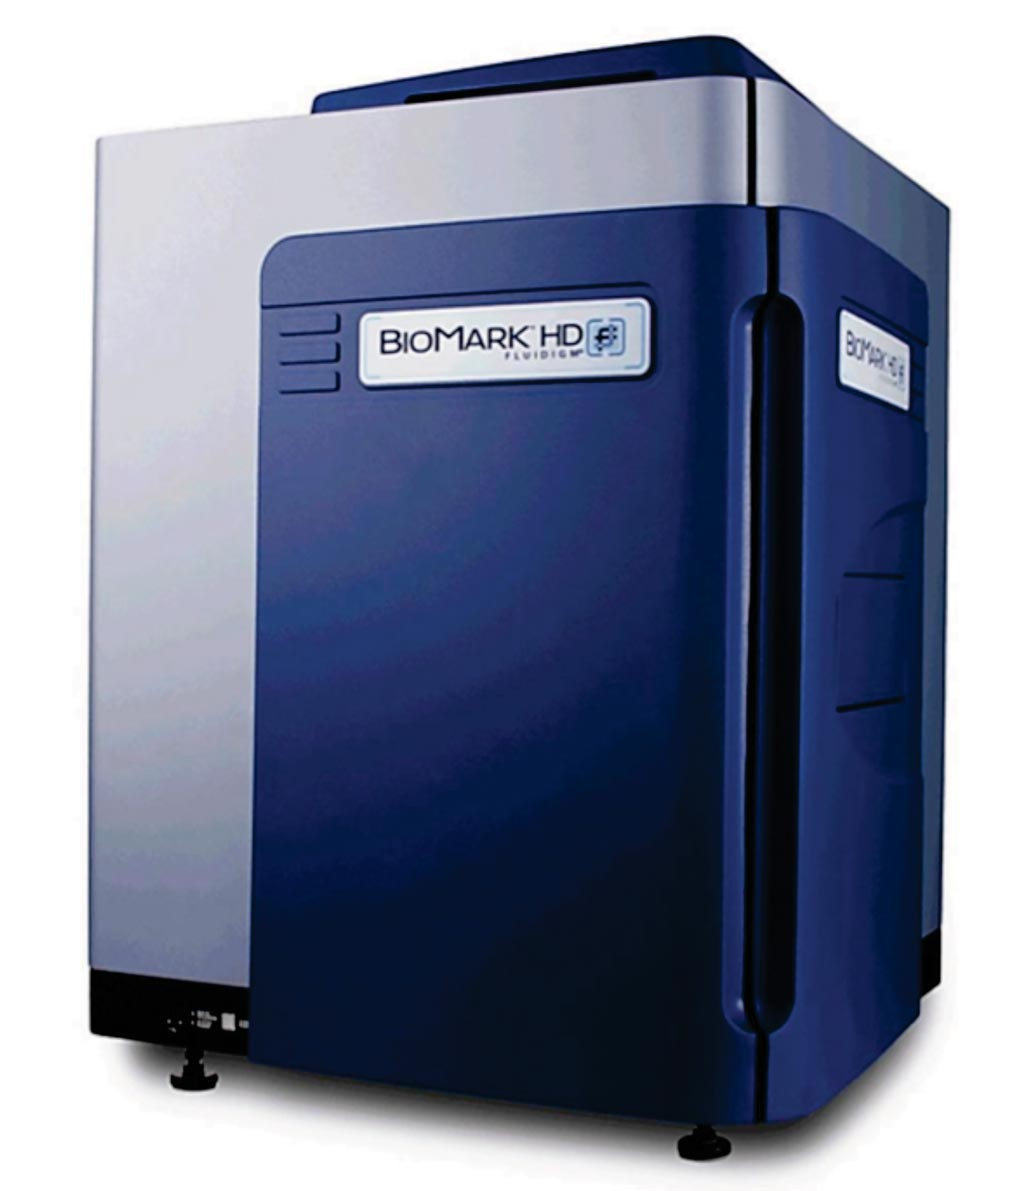 Image: The Biomark microfluidic system for polymerase chain reactions (Photo courtesy of Fluidigm).